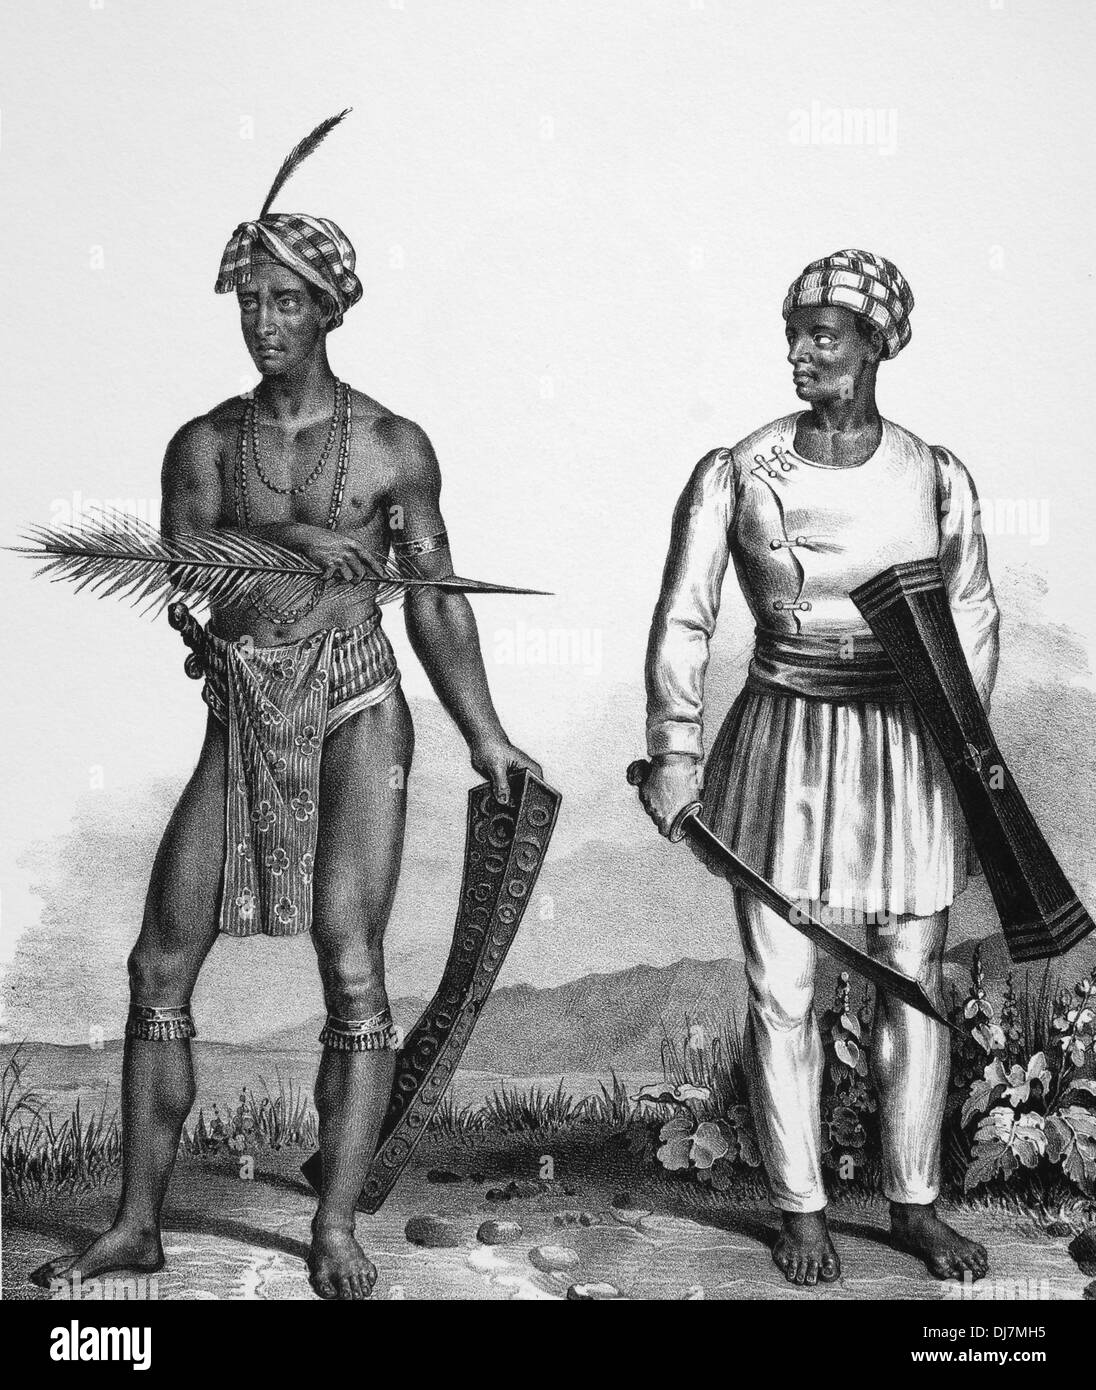 Asia. Indonesia. Men from North Sulawesi, c. 1840. Engraving. - Stock Image